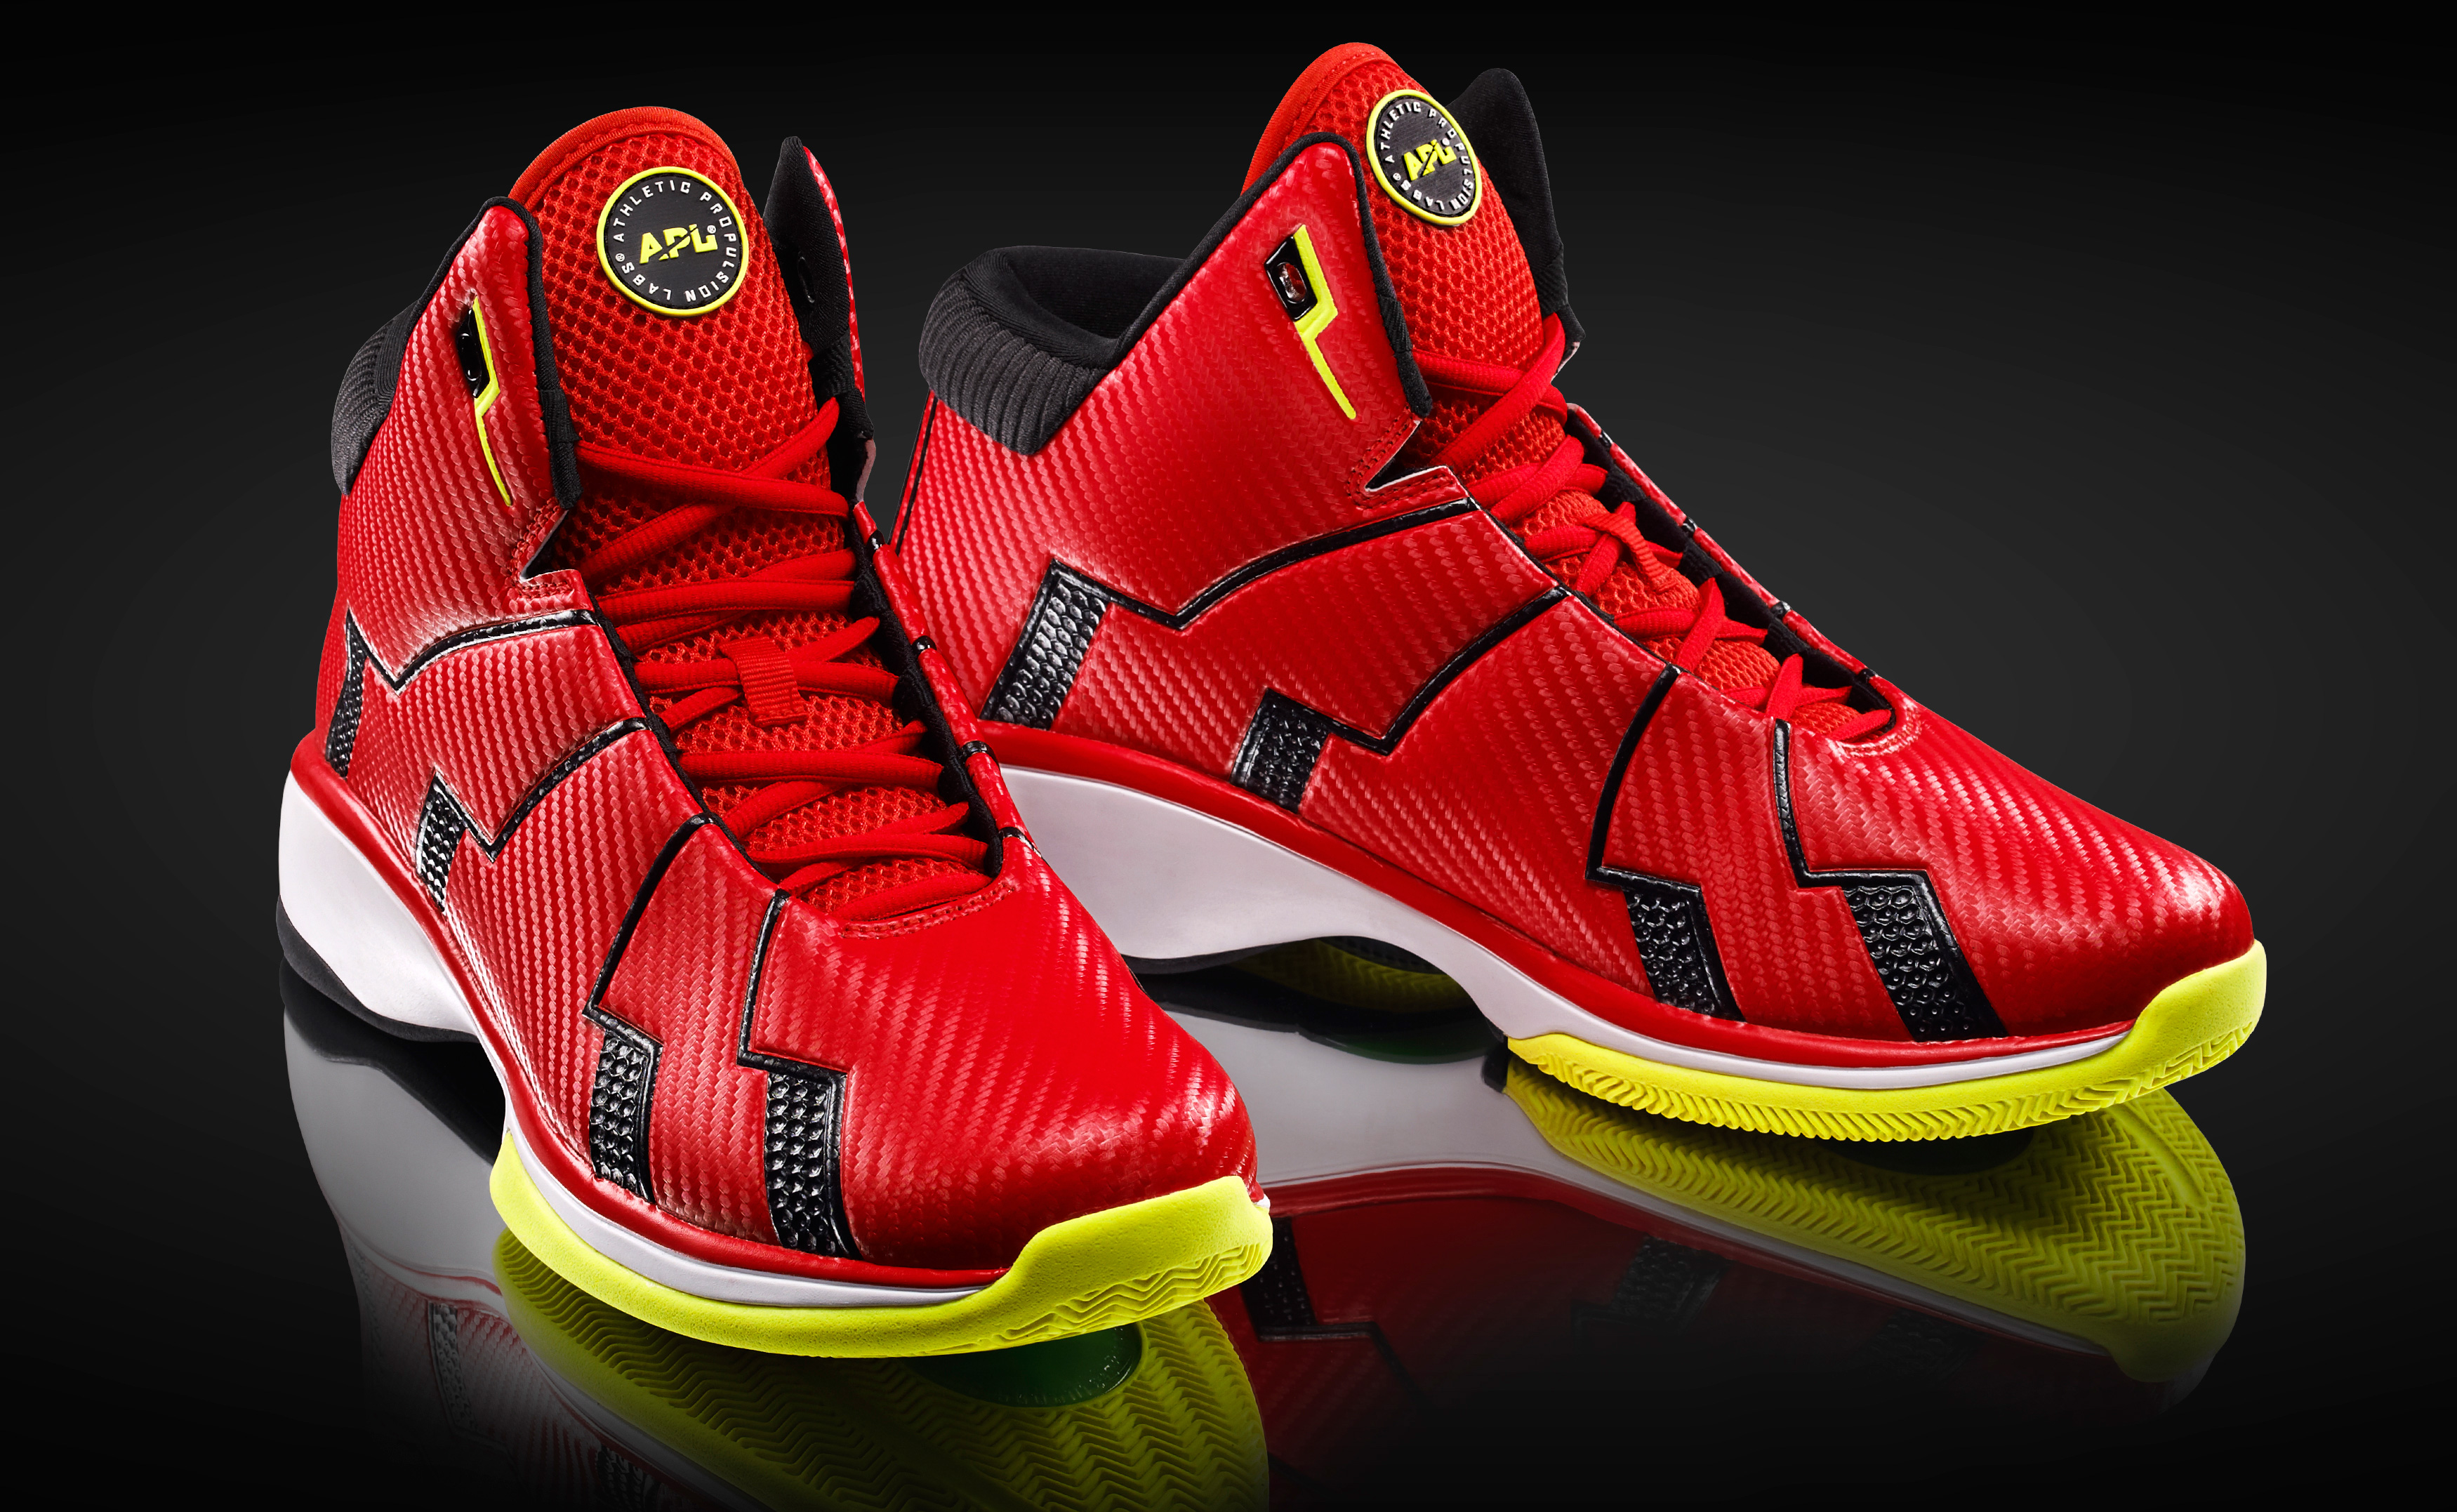 081b0eb8b81 ... Athletic Propulsion Labs Launches Limited Edition APL Concept 2  Basketball Shoes In Red EnergyAthletic Propulsion Labs . ...